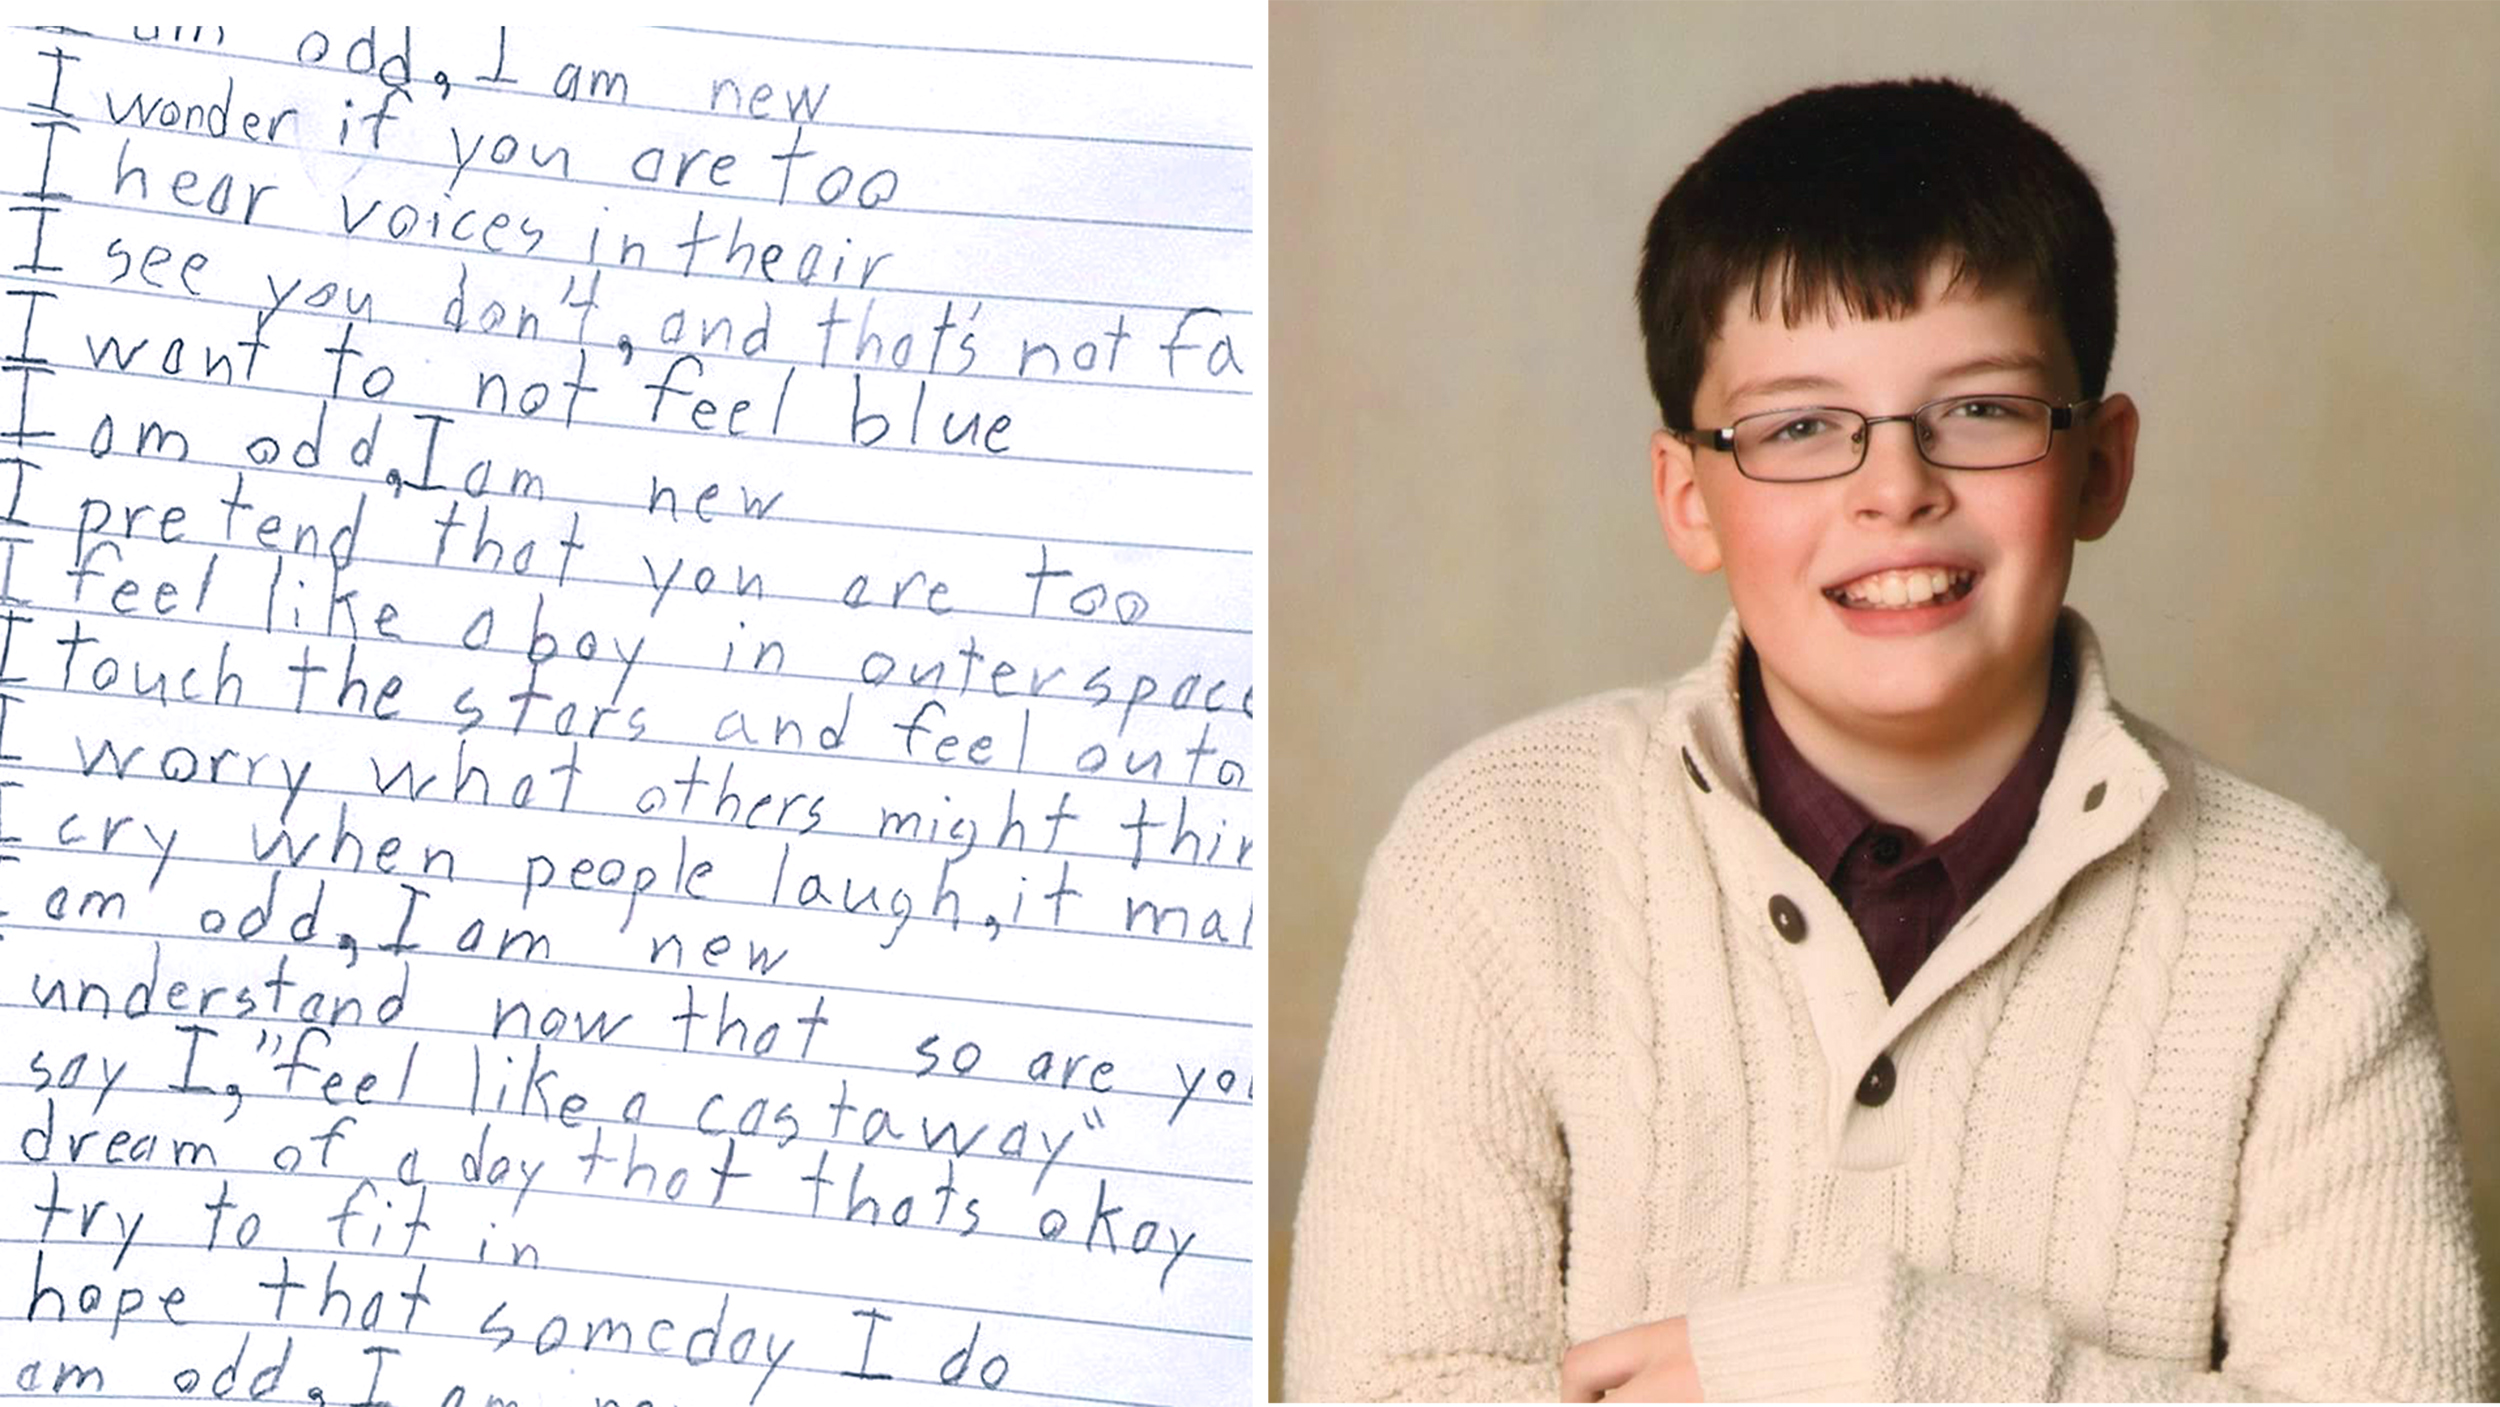 10-year-old writes beautiful poem about life with Aspergers